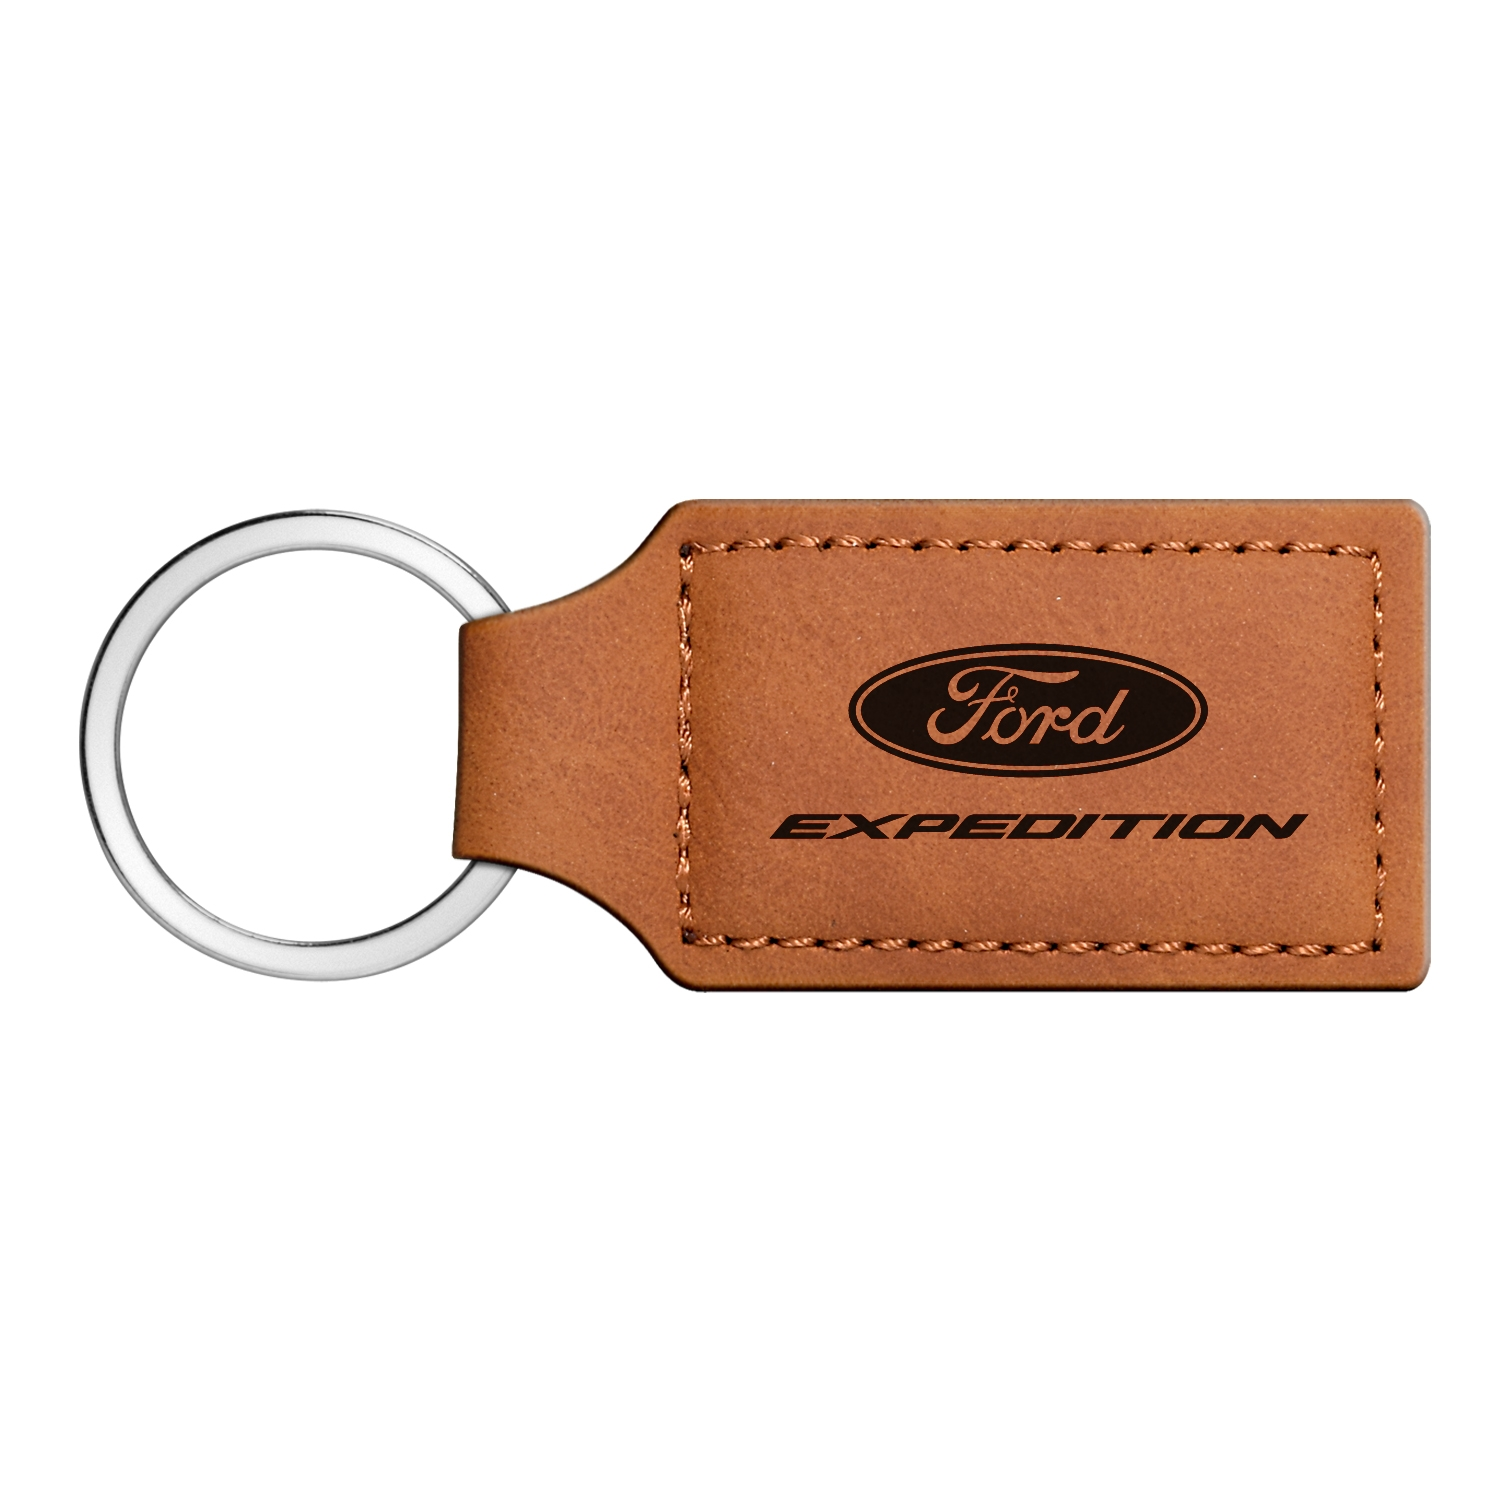 Ford Expedition Rectangular Brown Leather Key Chain